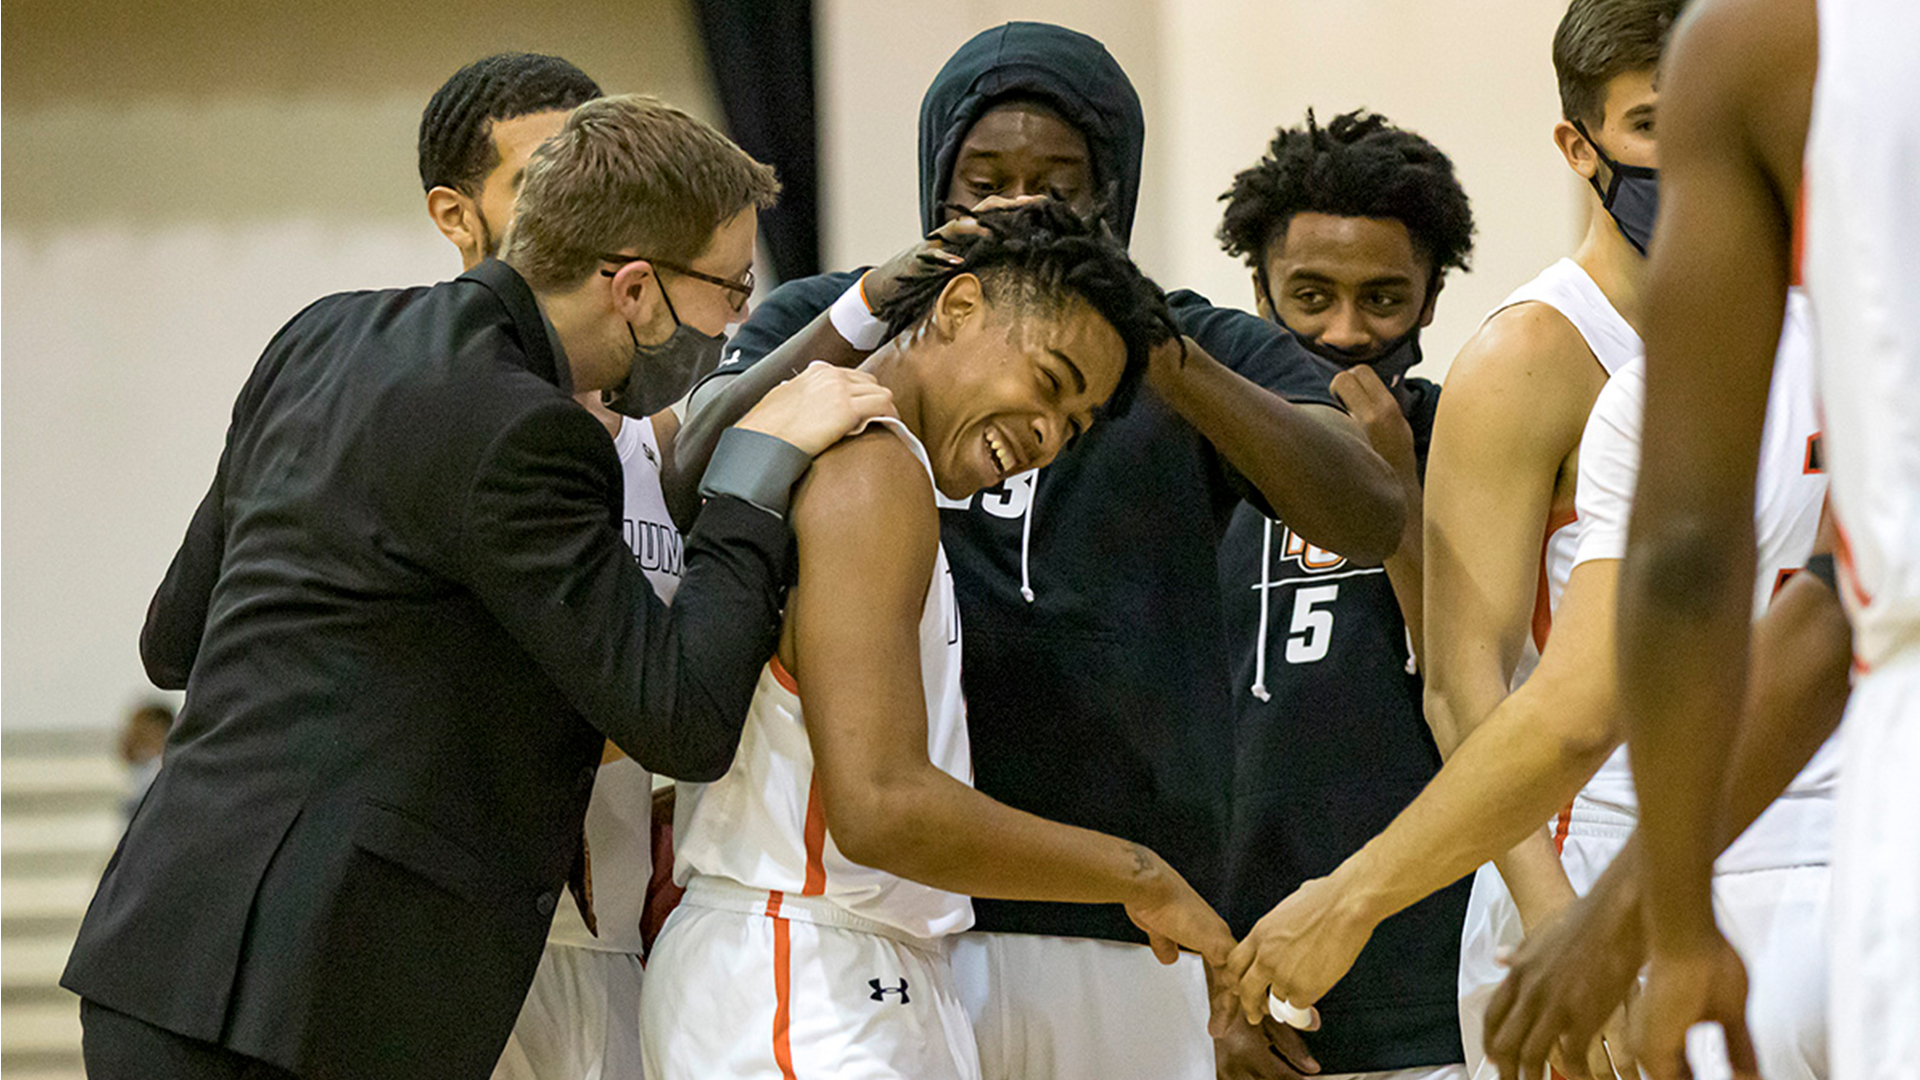 Freshman Kobe Funderburk is surrounded by his teammates as Tusculum defeated Wingate 87-75 (Photo by Chuck Williams)